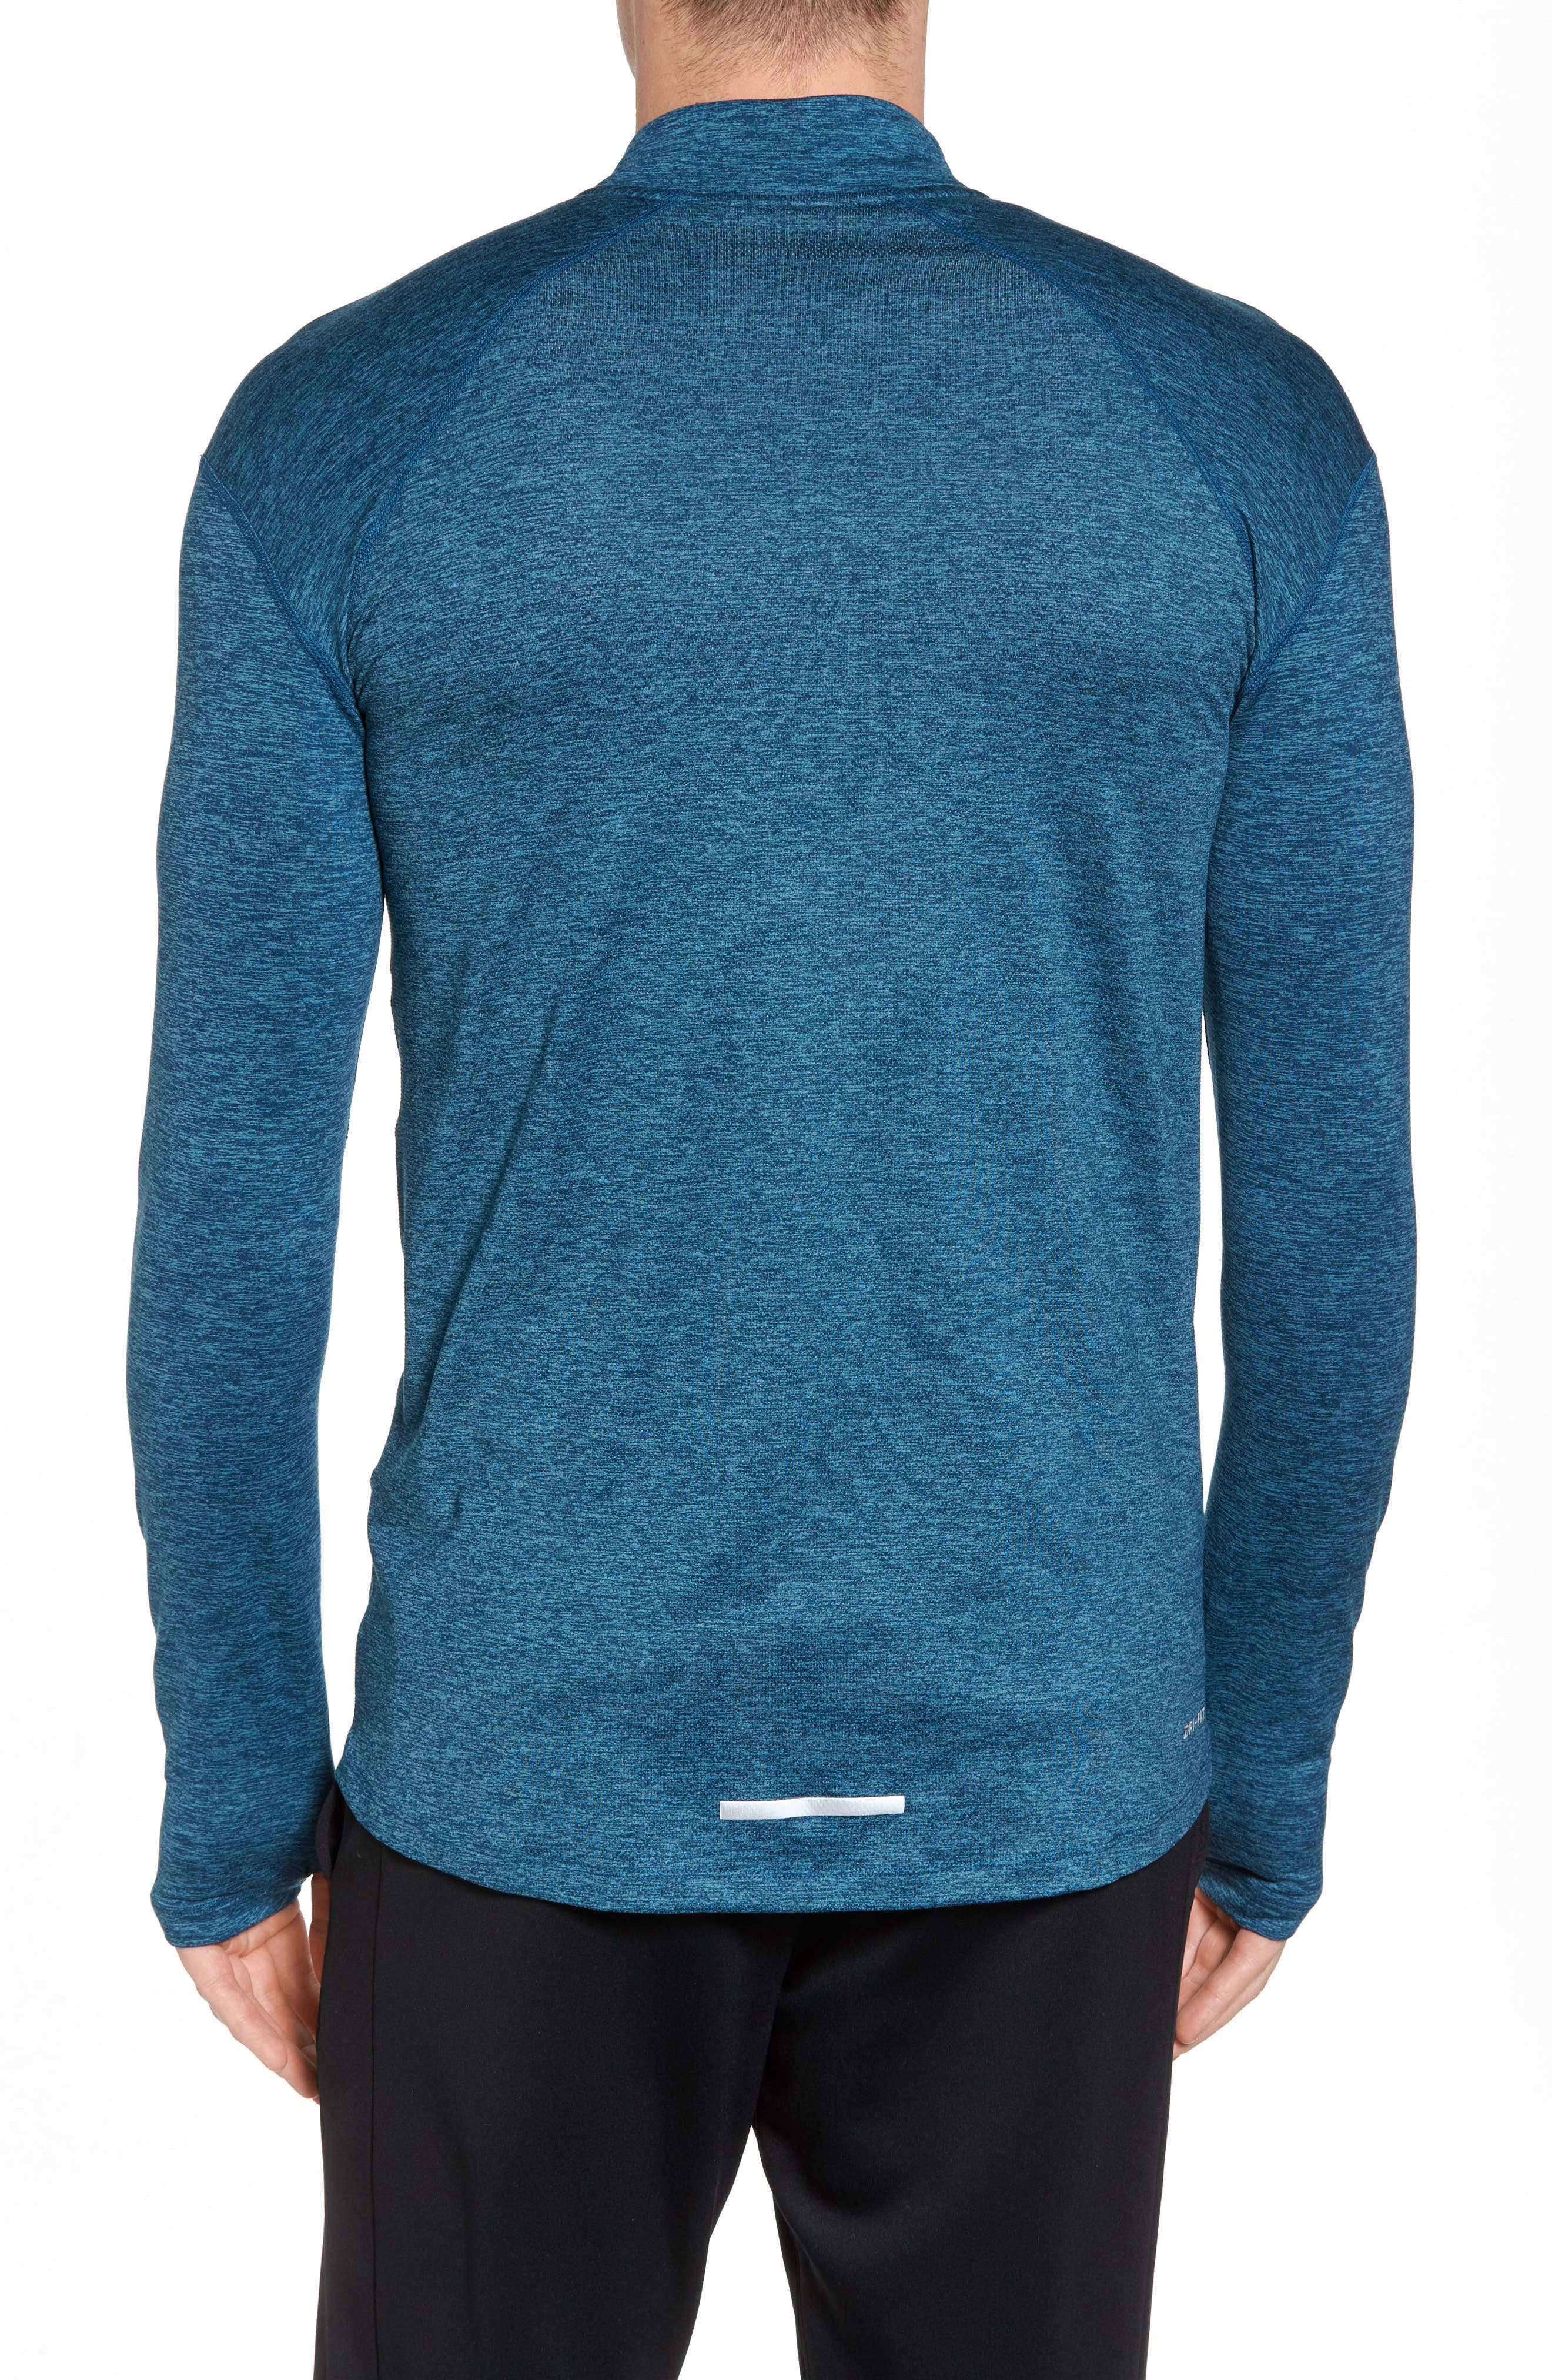 Dry Element Running Top,                             Alternate thumbnail 9, color,